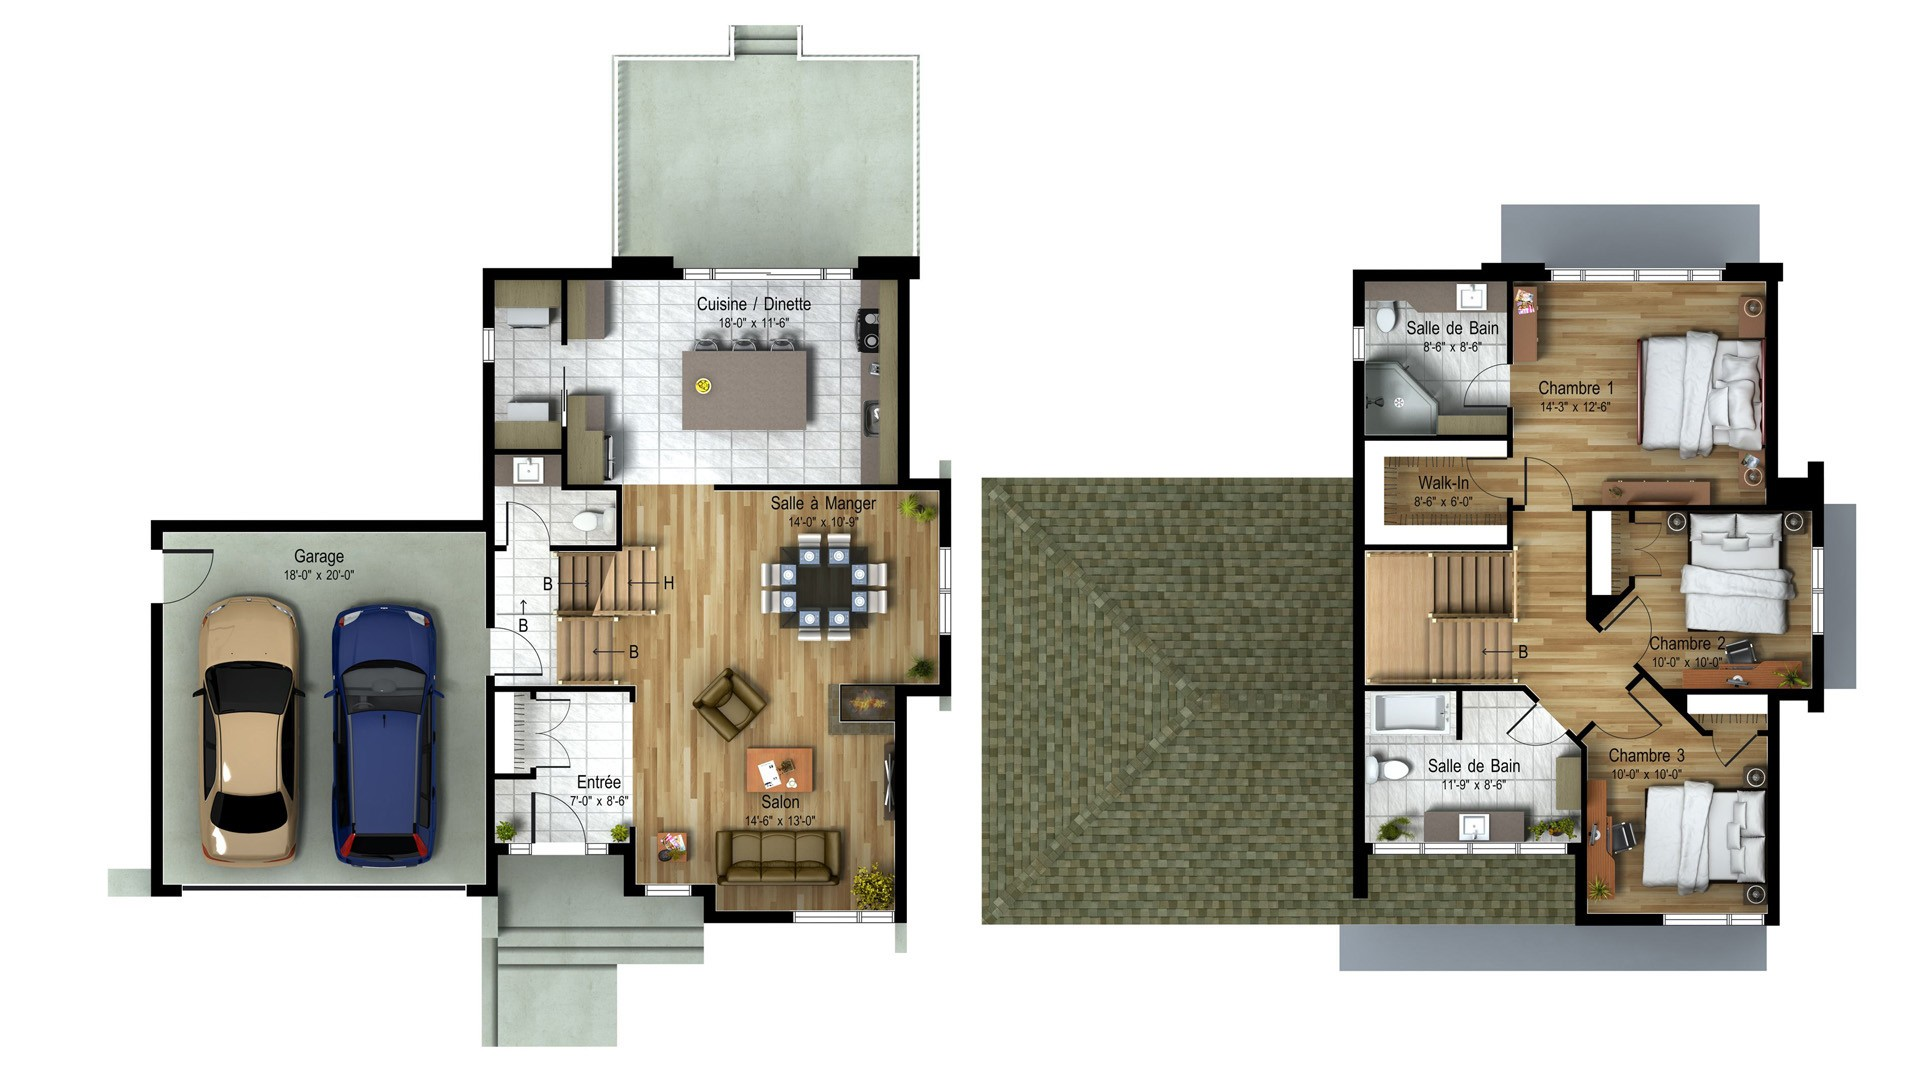 Cottage_Contemporain_Elegancia_Plan maison de prestige_Domicil